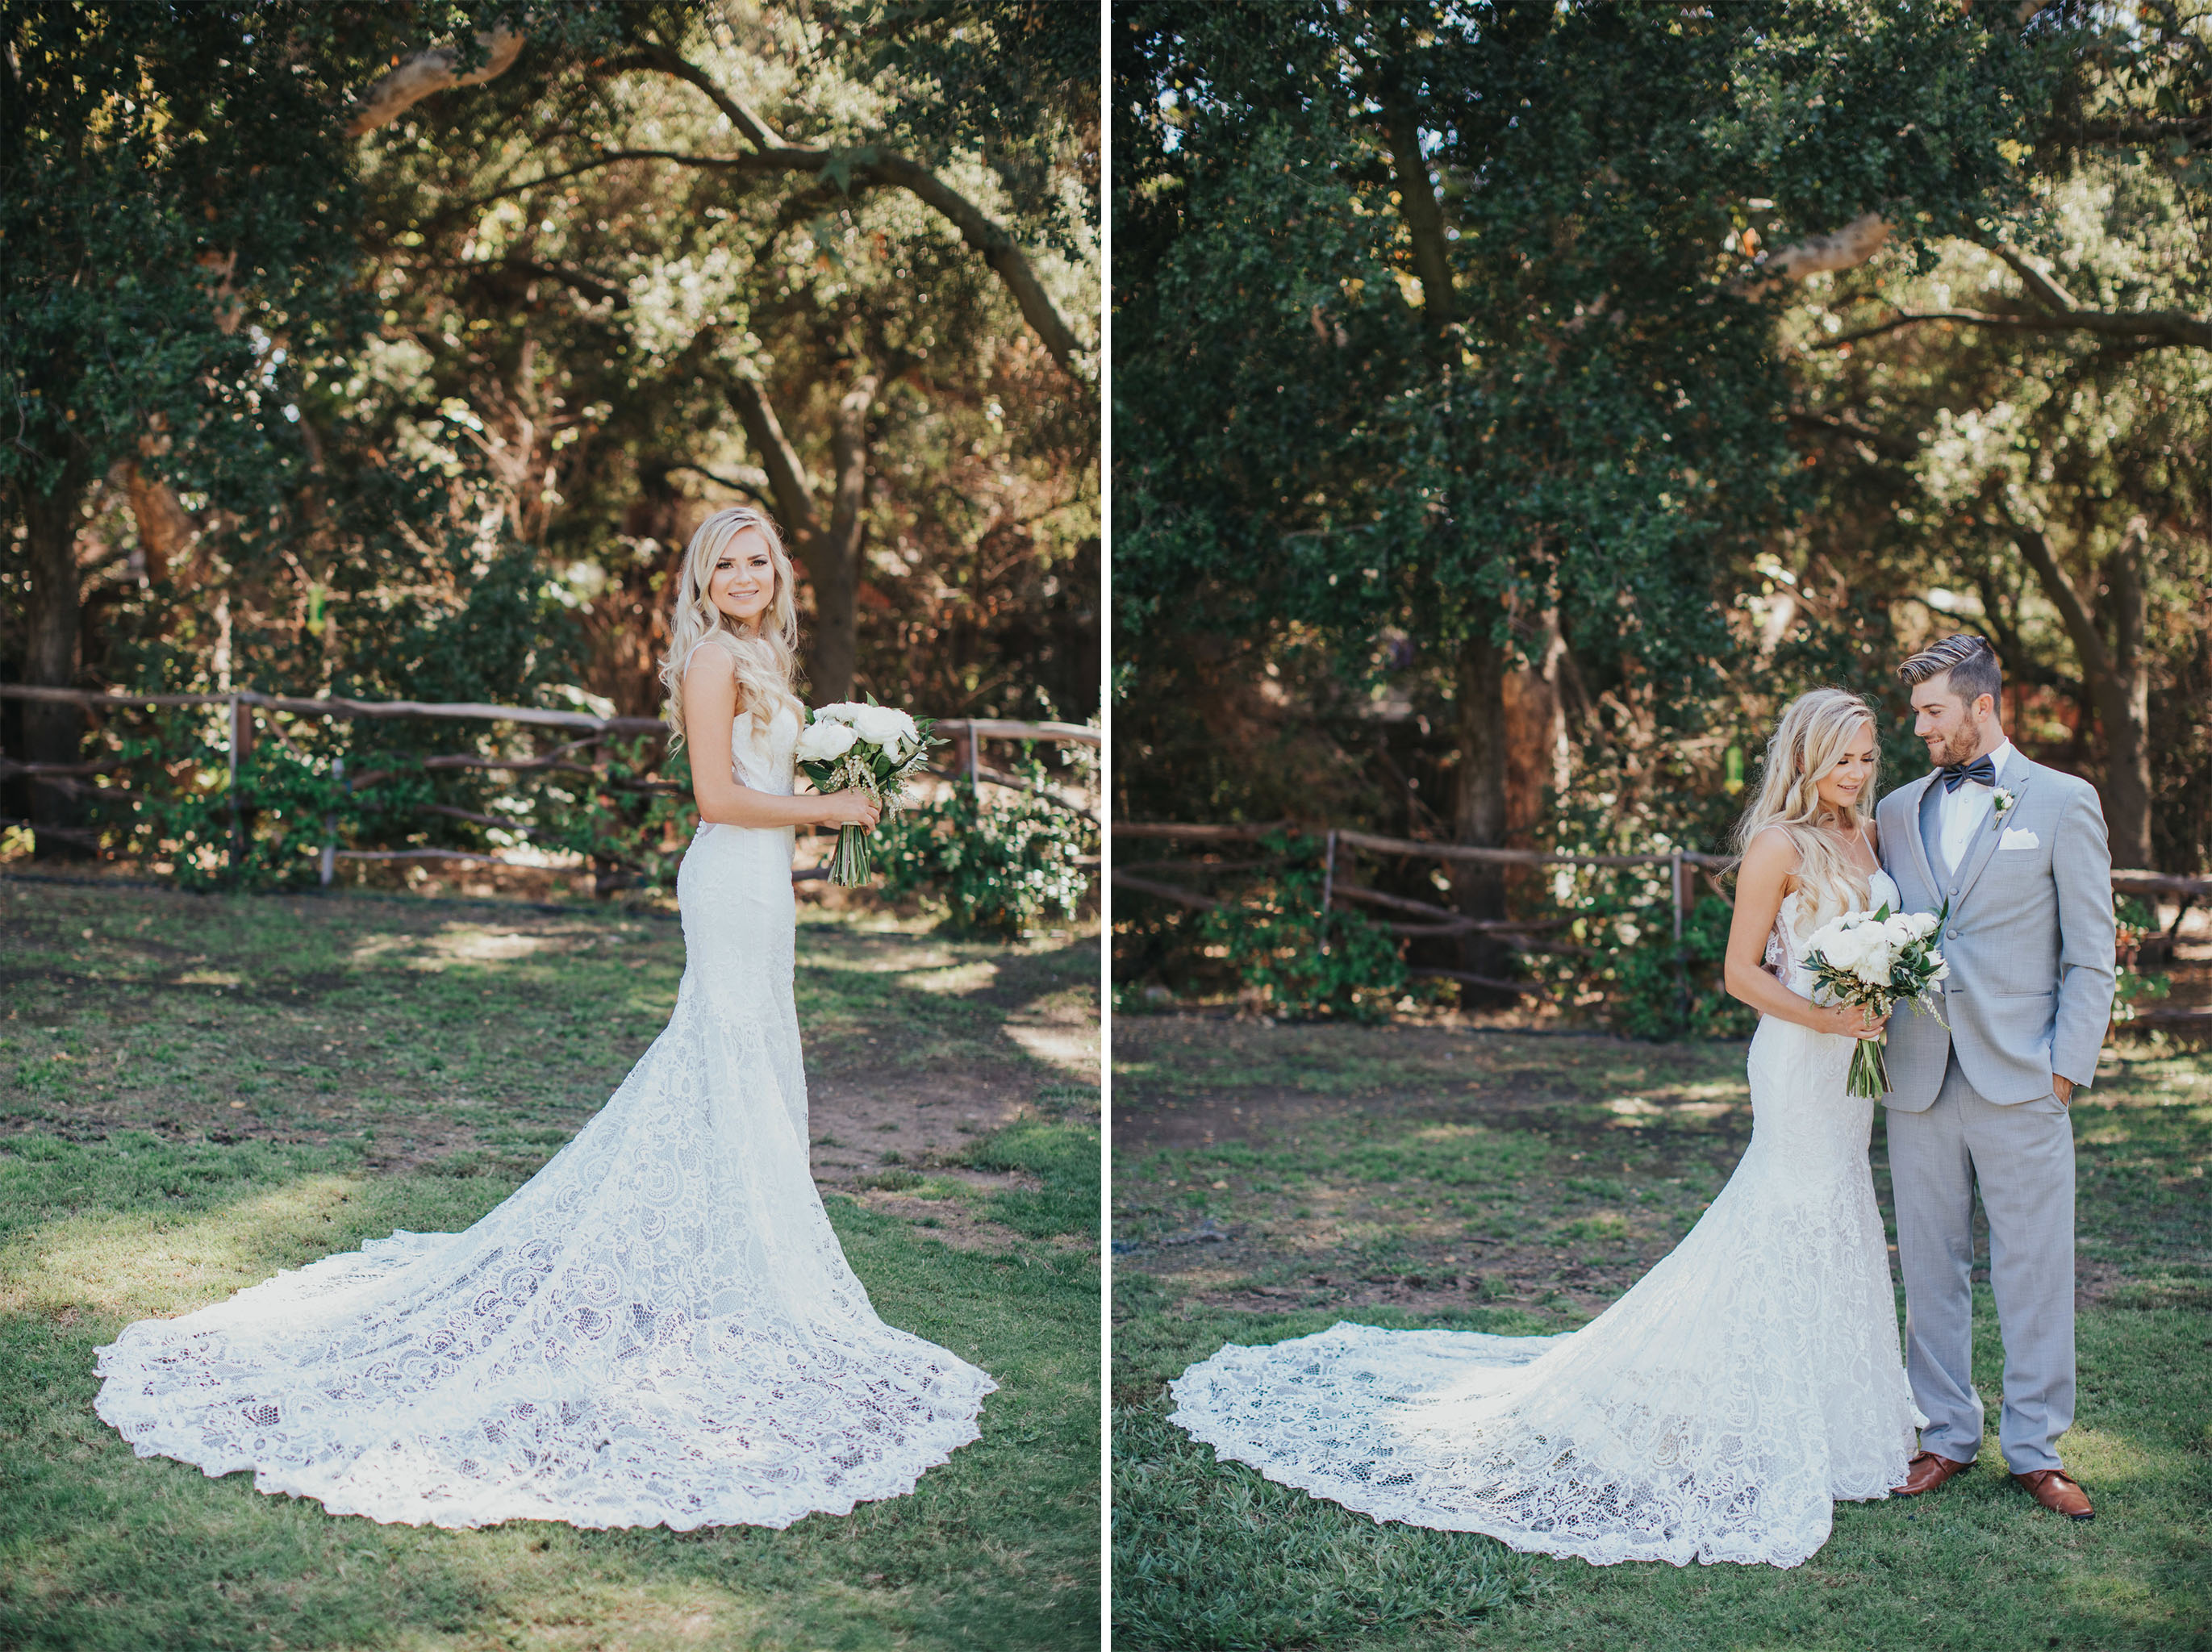 Bride Wedding Dress | Calamigos Ranch